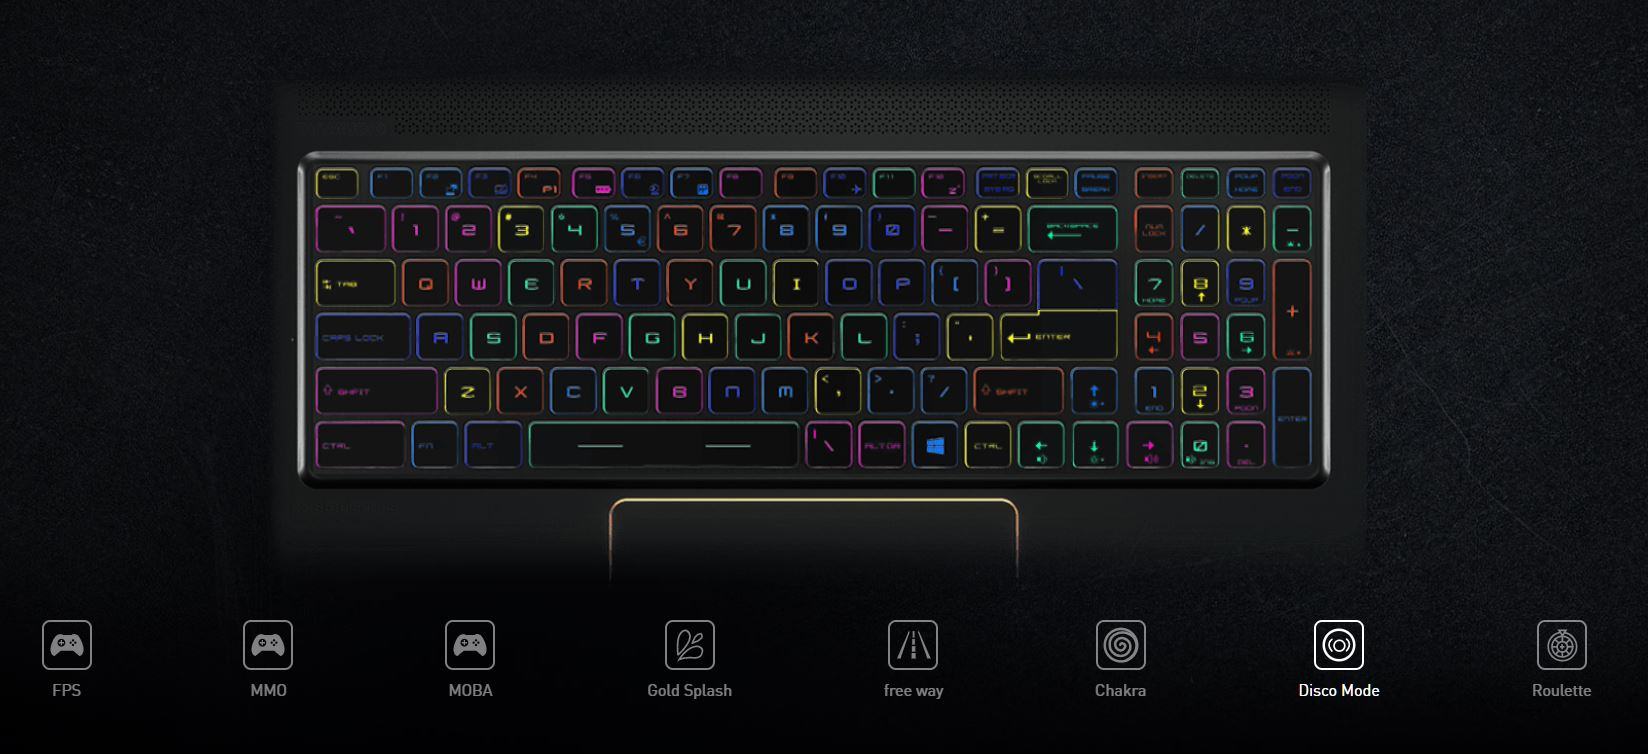 Backlit keyboard, lighting effects.